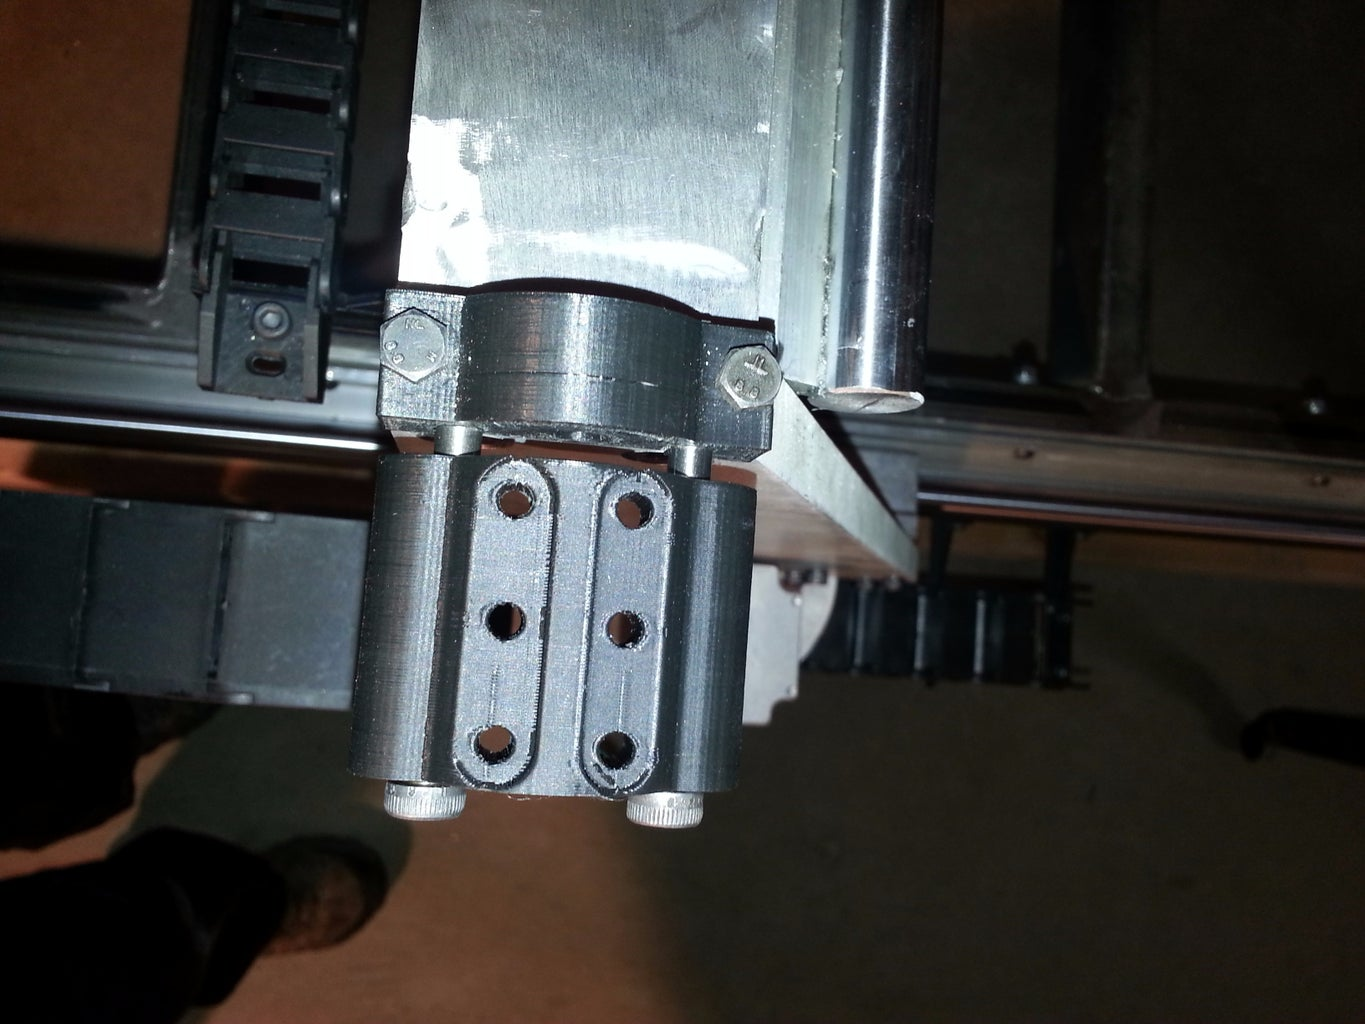 Affixing and Tensioning the Belts